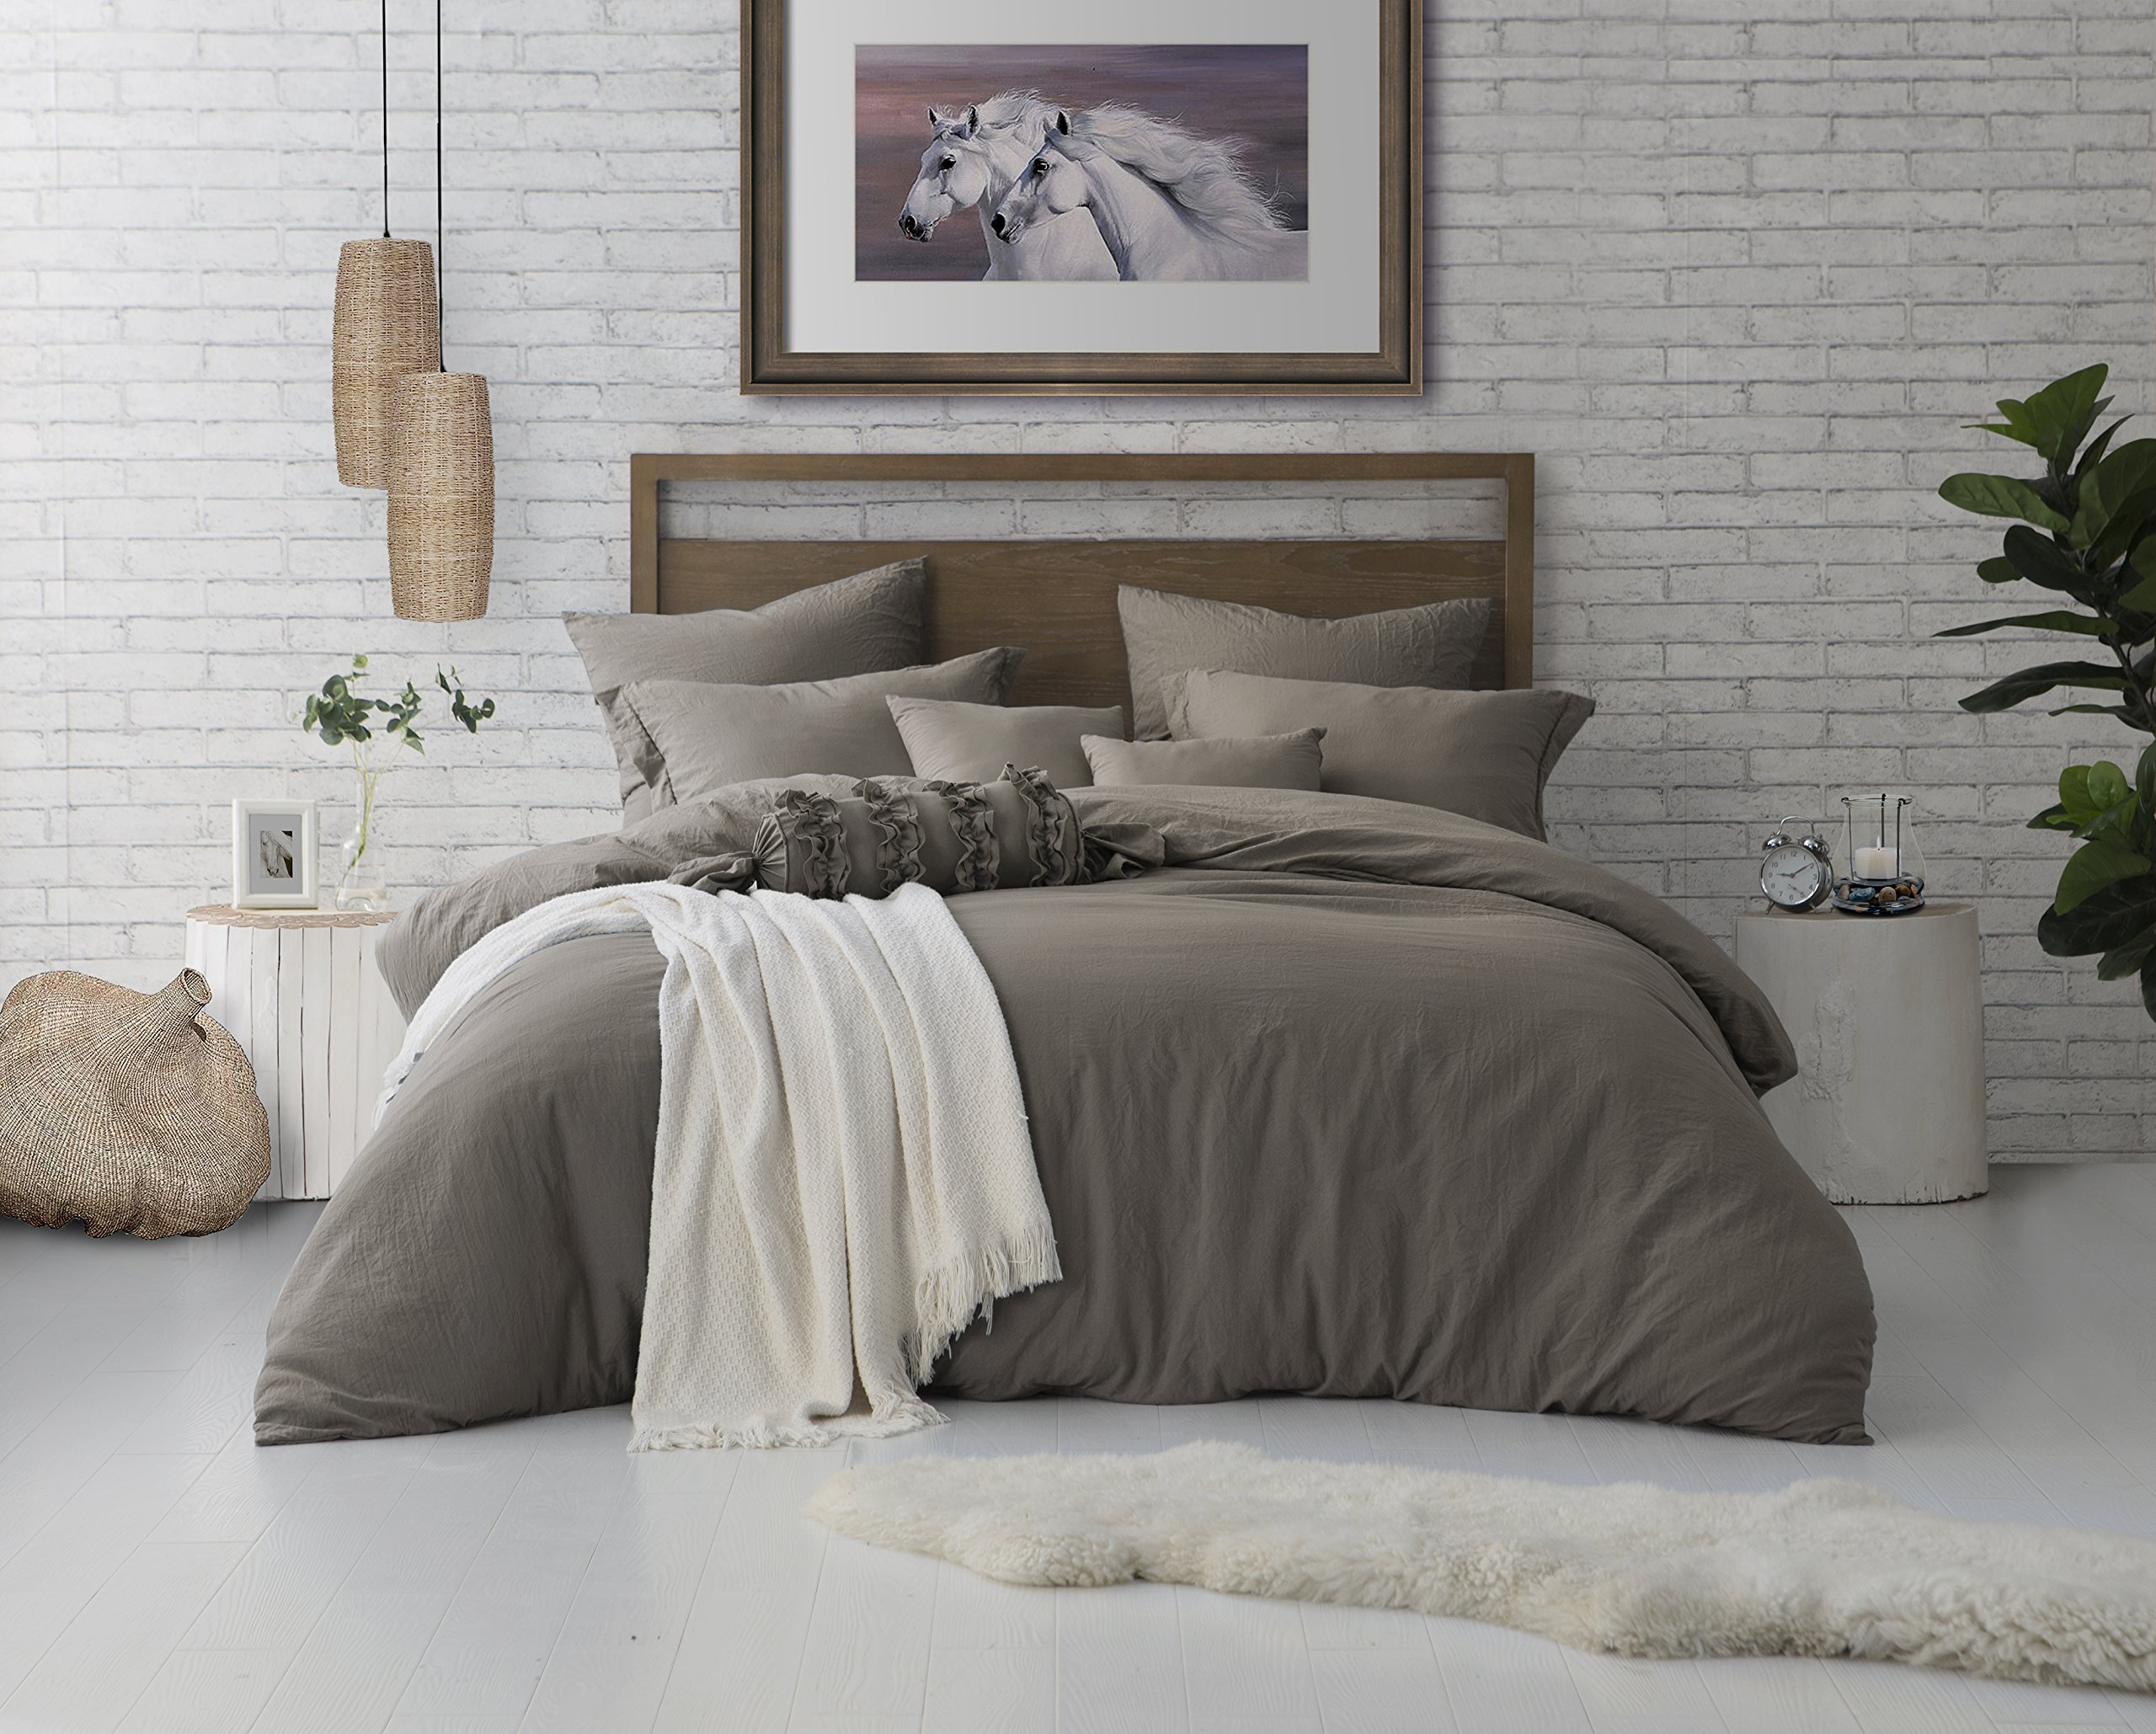 Swift Home Microfiber Washed Crinkle Duvet Cover & Sham (1 Duvet Cover with Zipper Closure & 2 Pillow Shams), Premium Hotel Quality Bed Set, Ultra-Soft & Hypoallergenic – Full/Queen, Driftwood by Swift Home (Image #1)